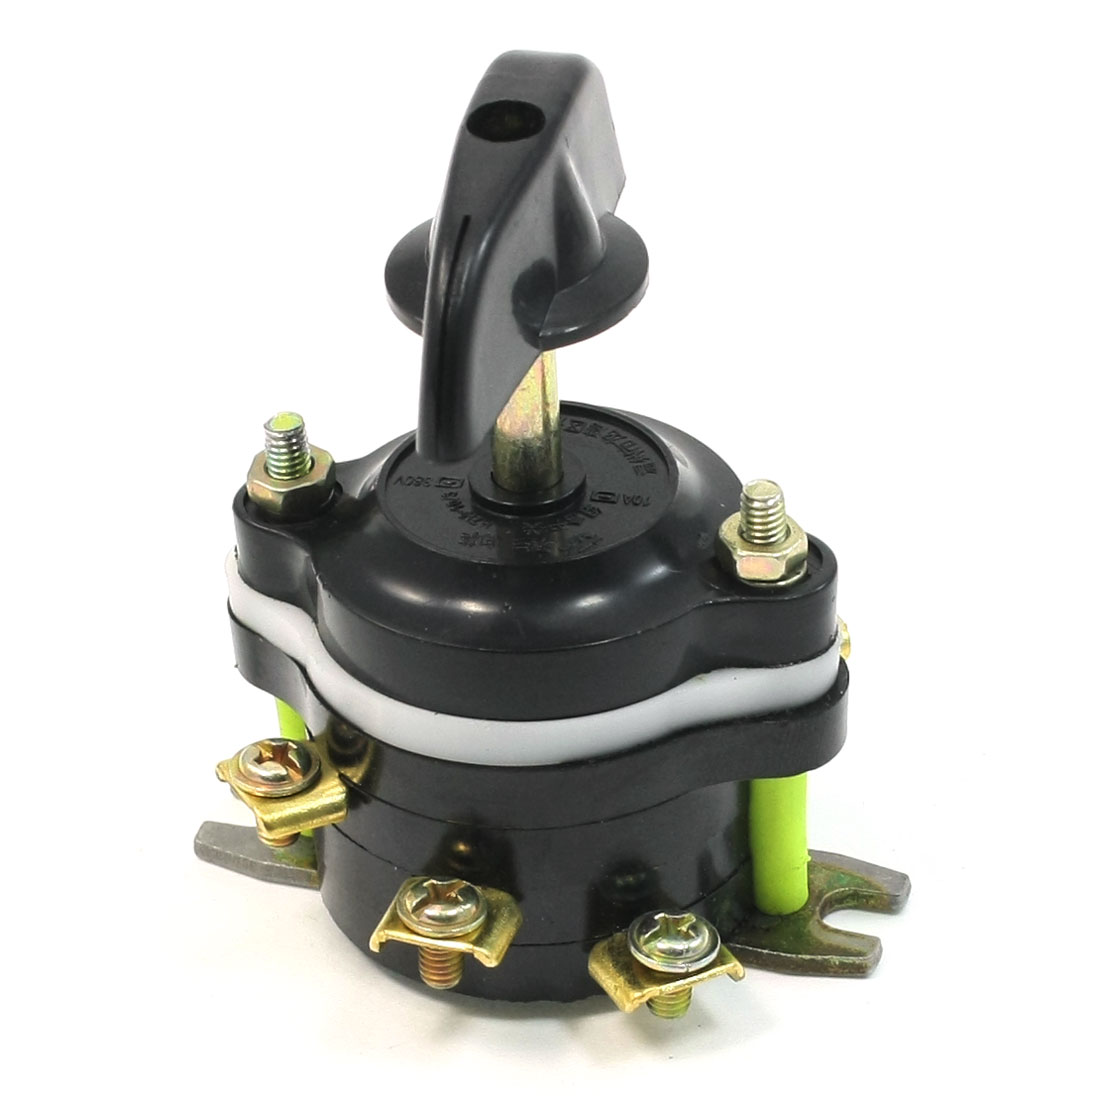 380V 10A 3 Position Rotary Selector Lug Control Combination Switch